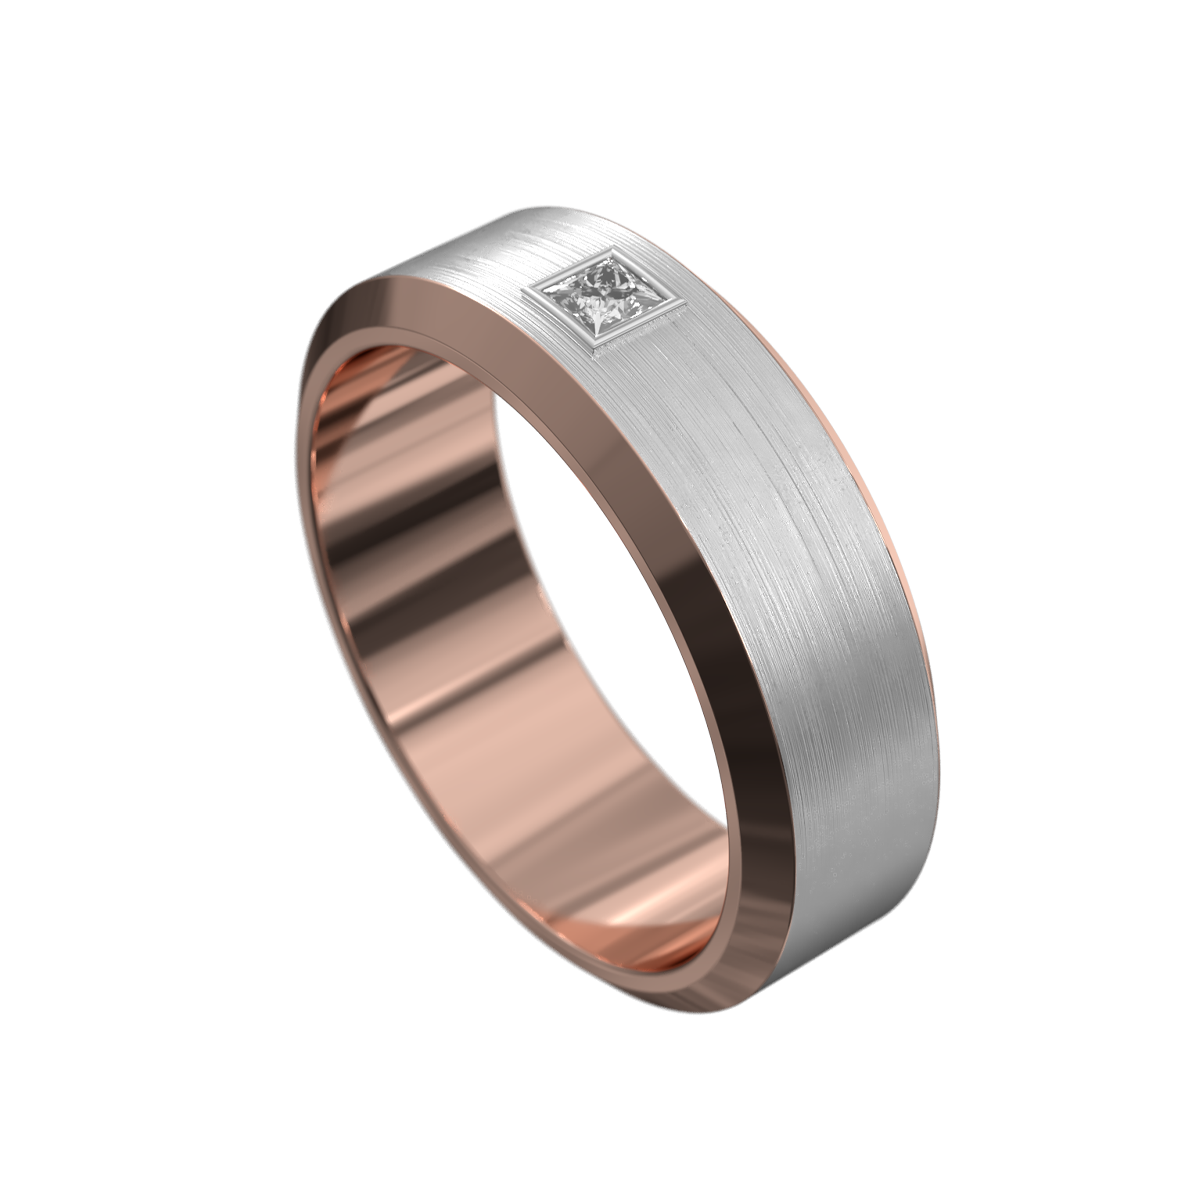 WWAD8016-RW – Brushed Rose and White Gold Mens Ring